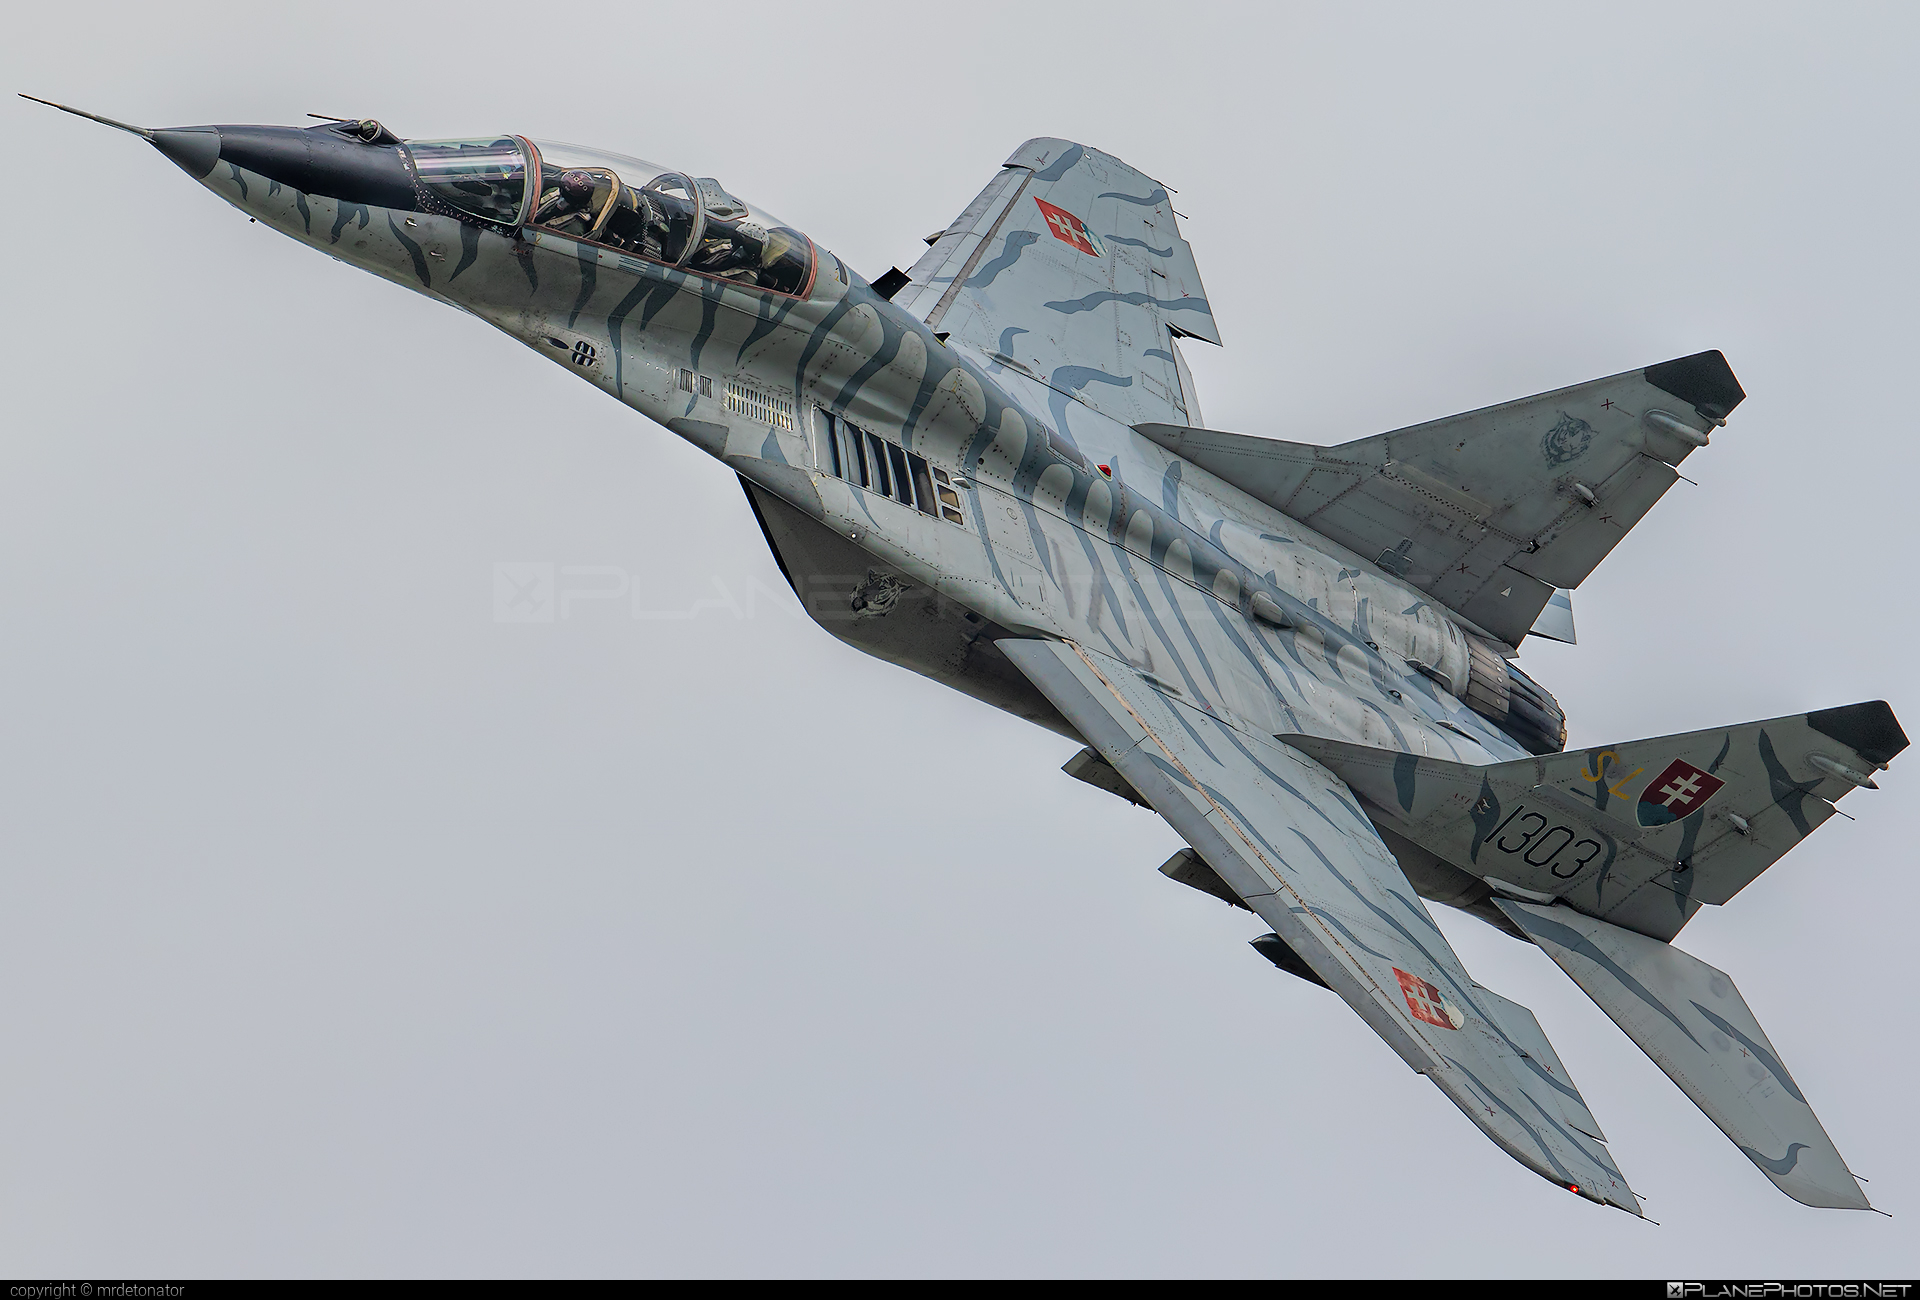 Mikoyan-Gurevich MiG-29UBS - 1303 operated by Vzdušné sily OS SR (Slovak Air Force) #mig #mig29 #mig29ubs #mikoyangurevich #siaf2018 #slovakairforce #vzdusnesilyossr